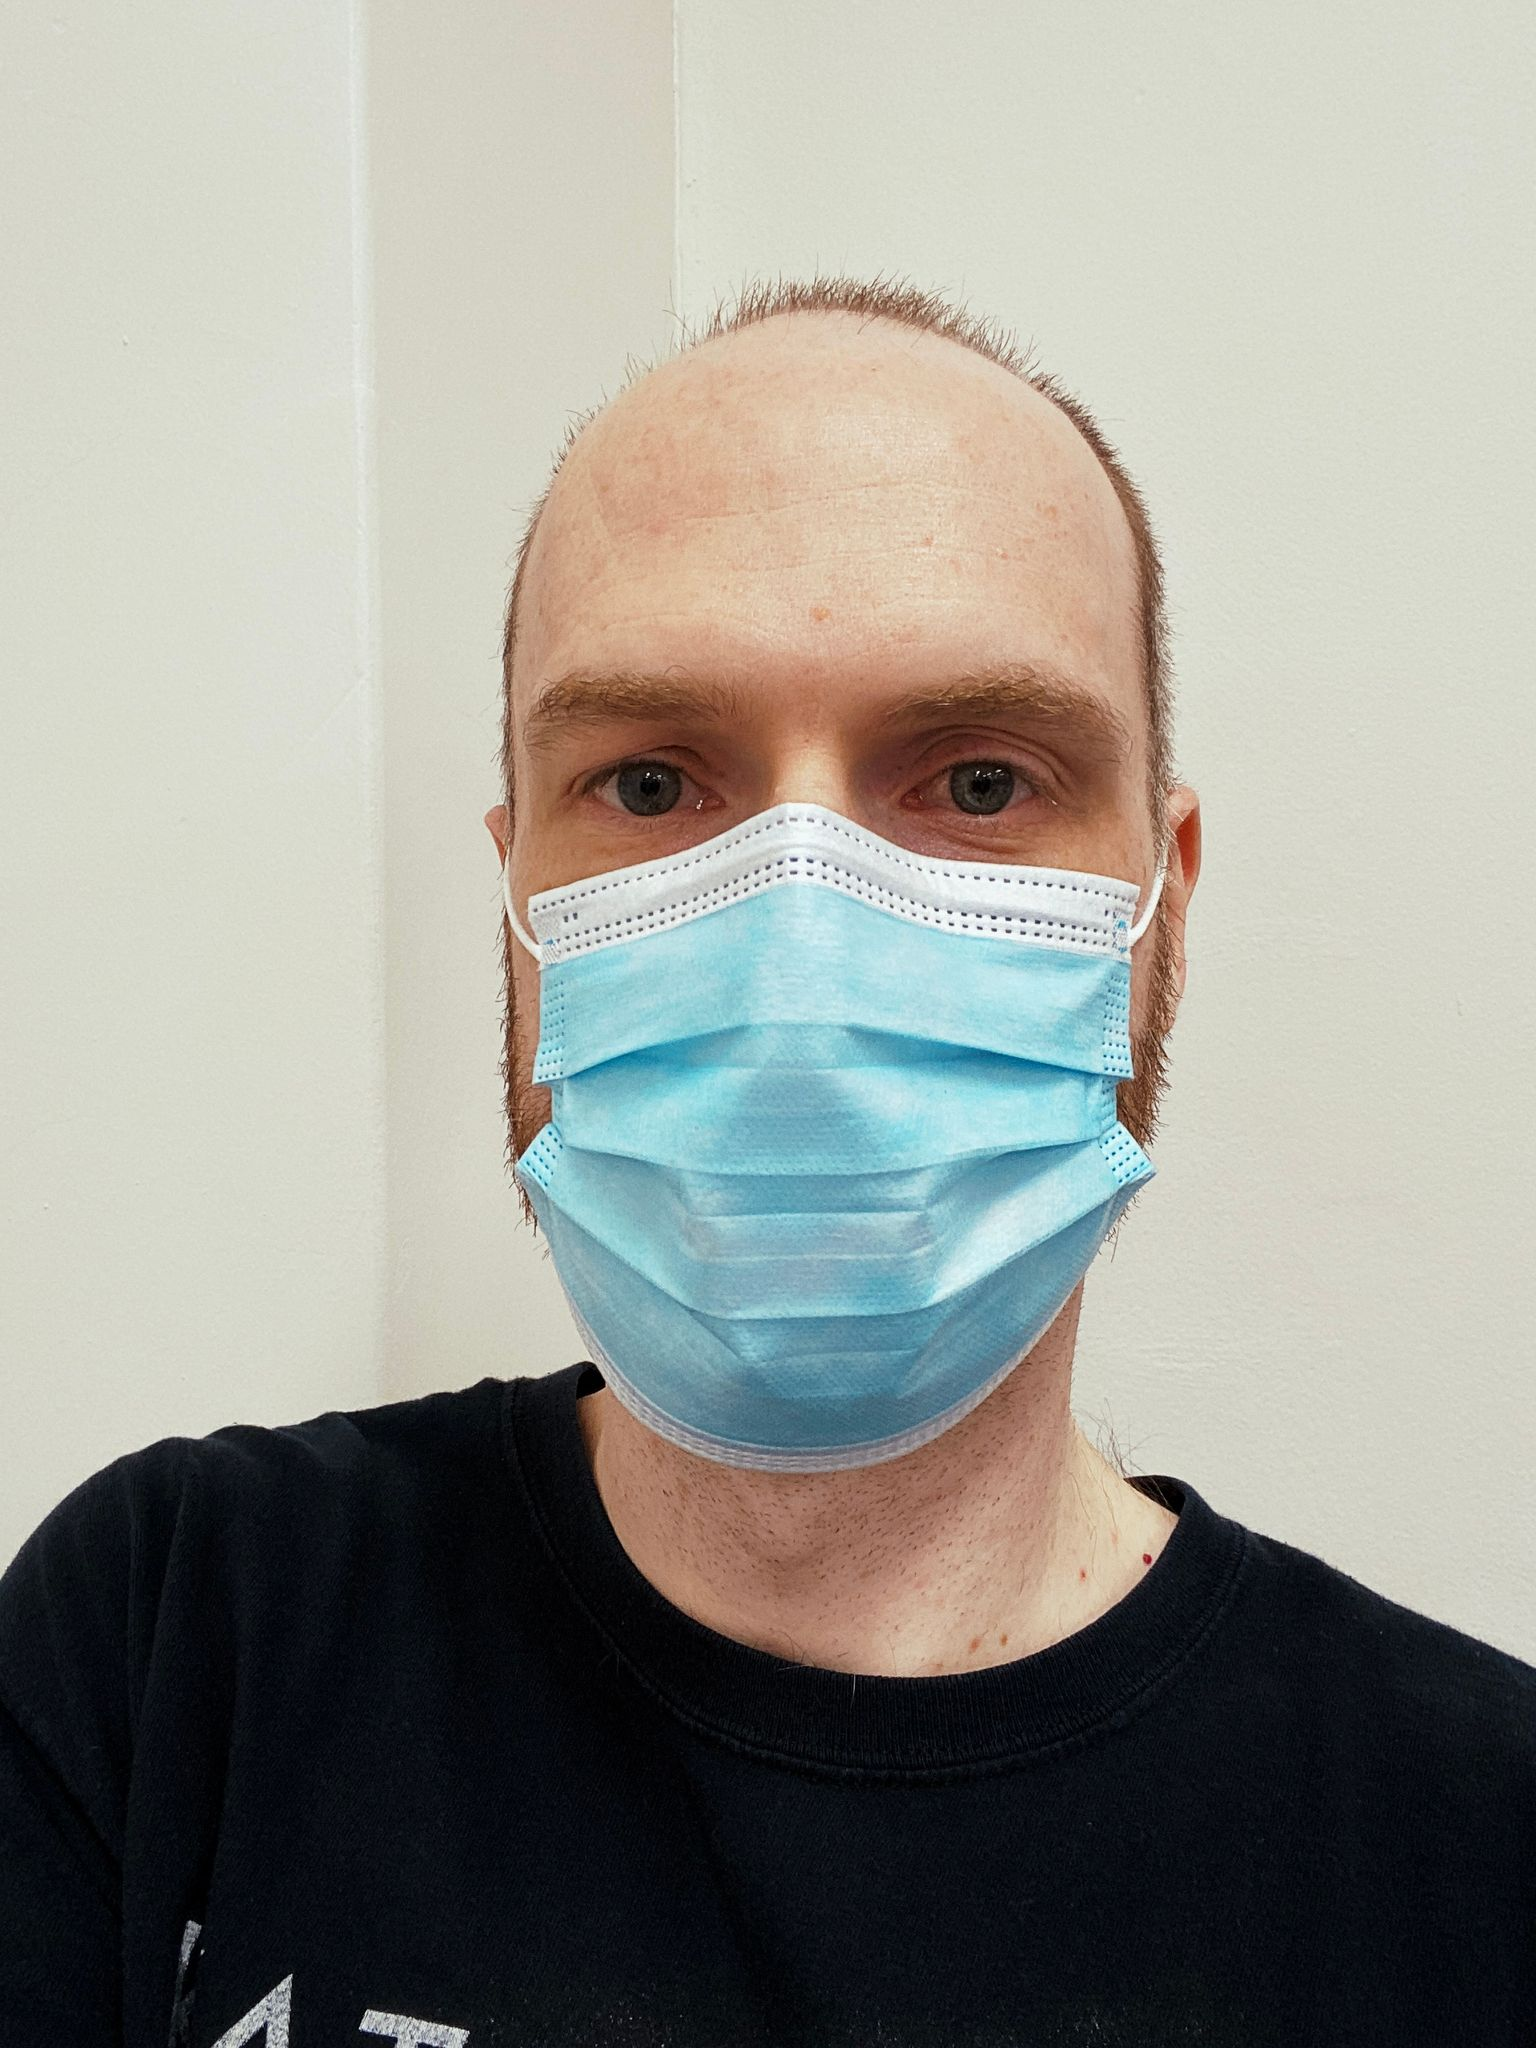 A photo of a white man with short hair wearing a blue surgical mask.